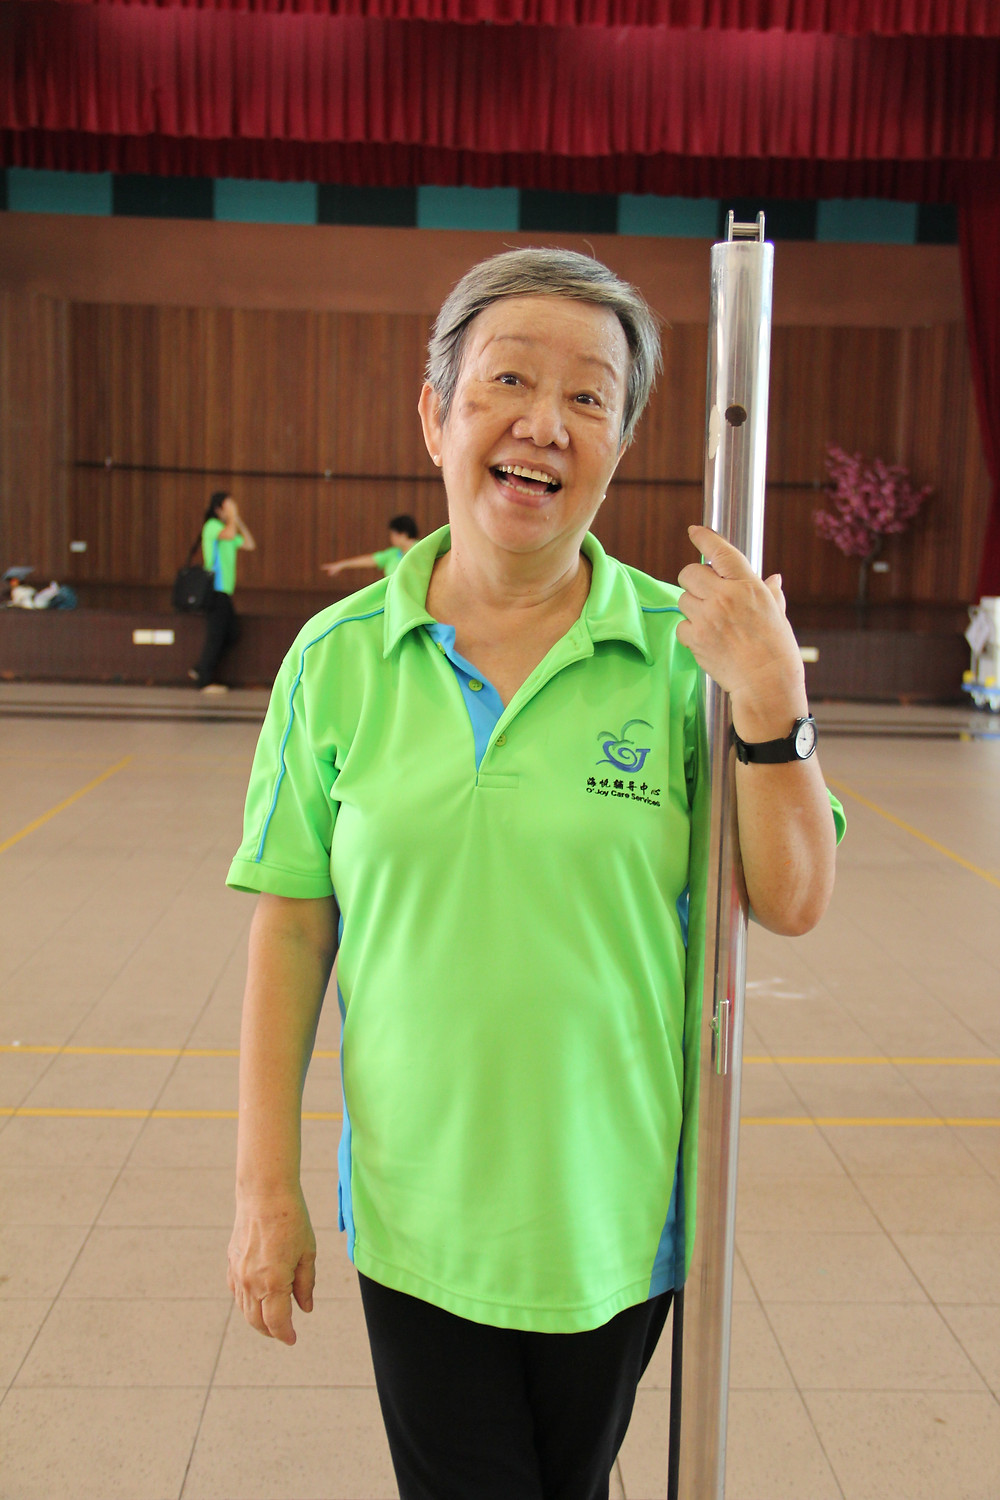 Chiew Sim, 65 years old